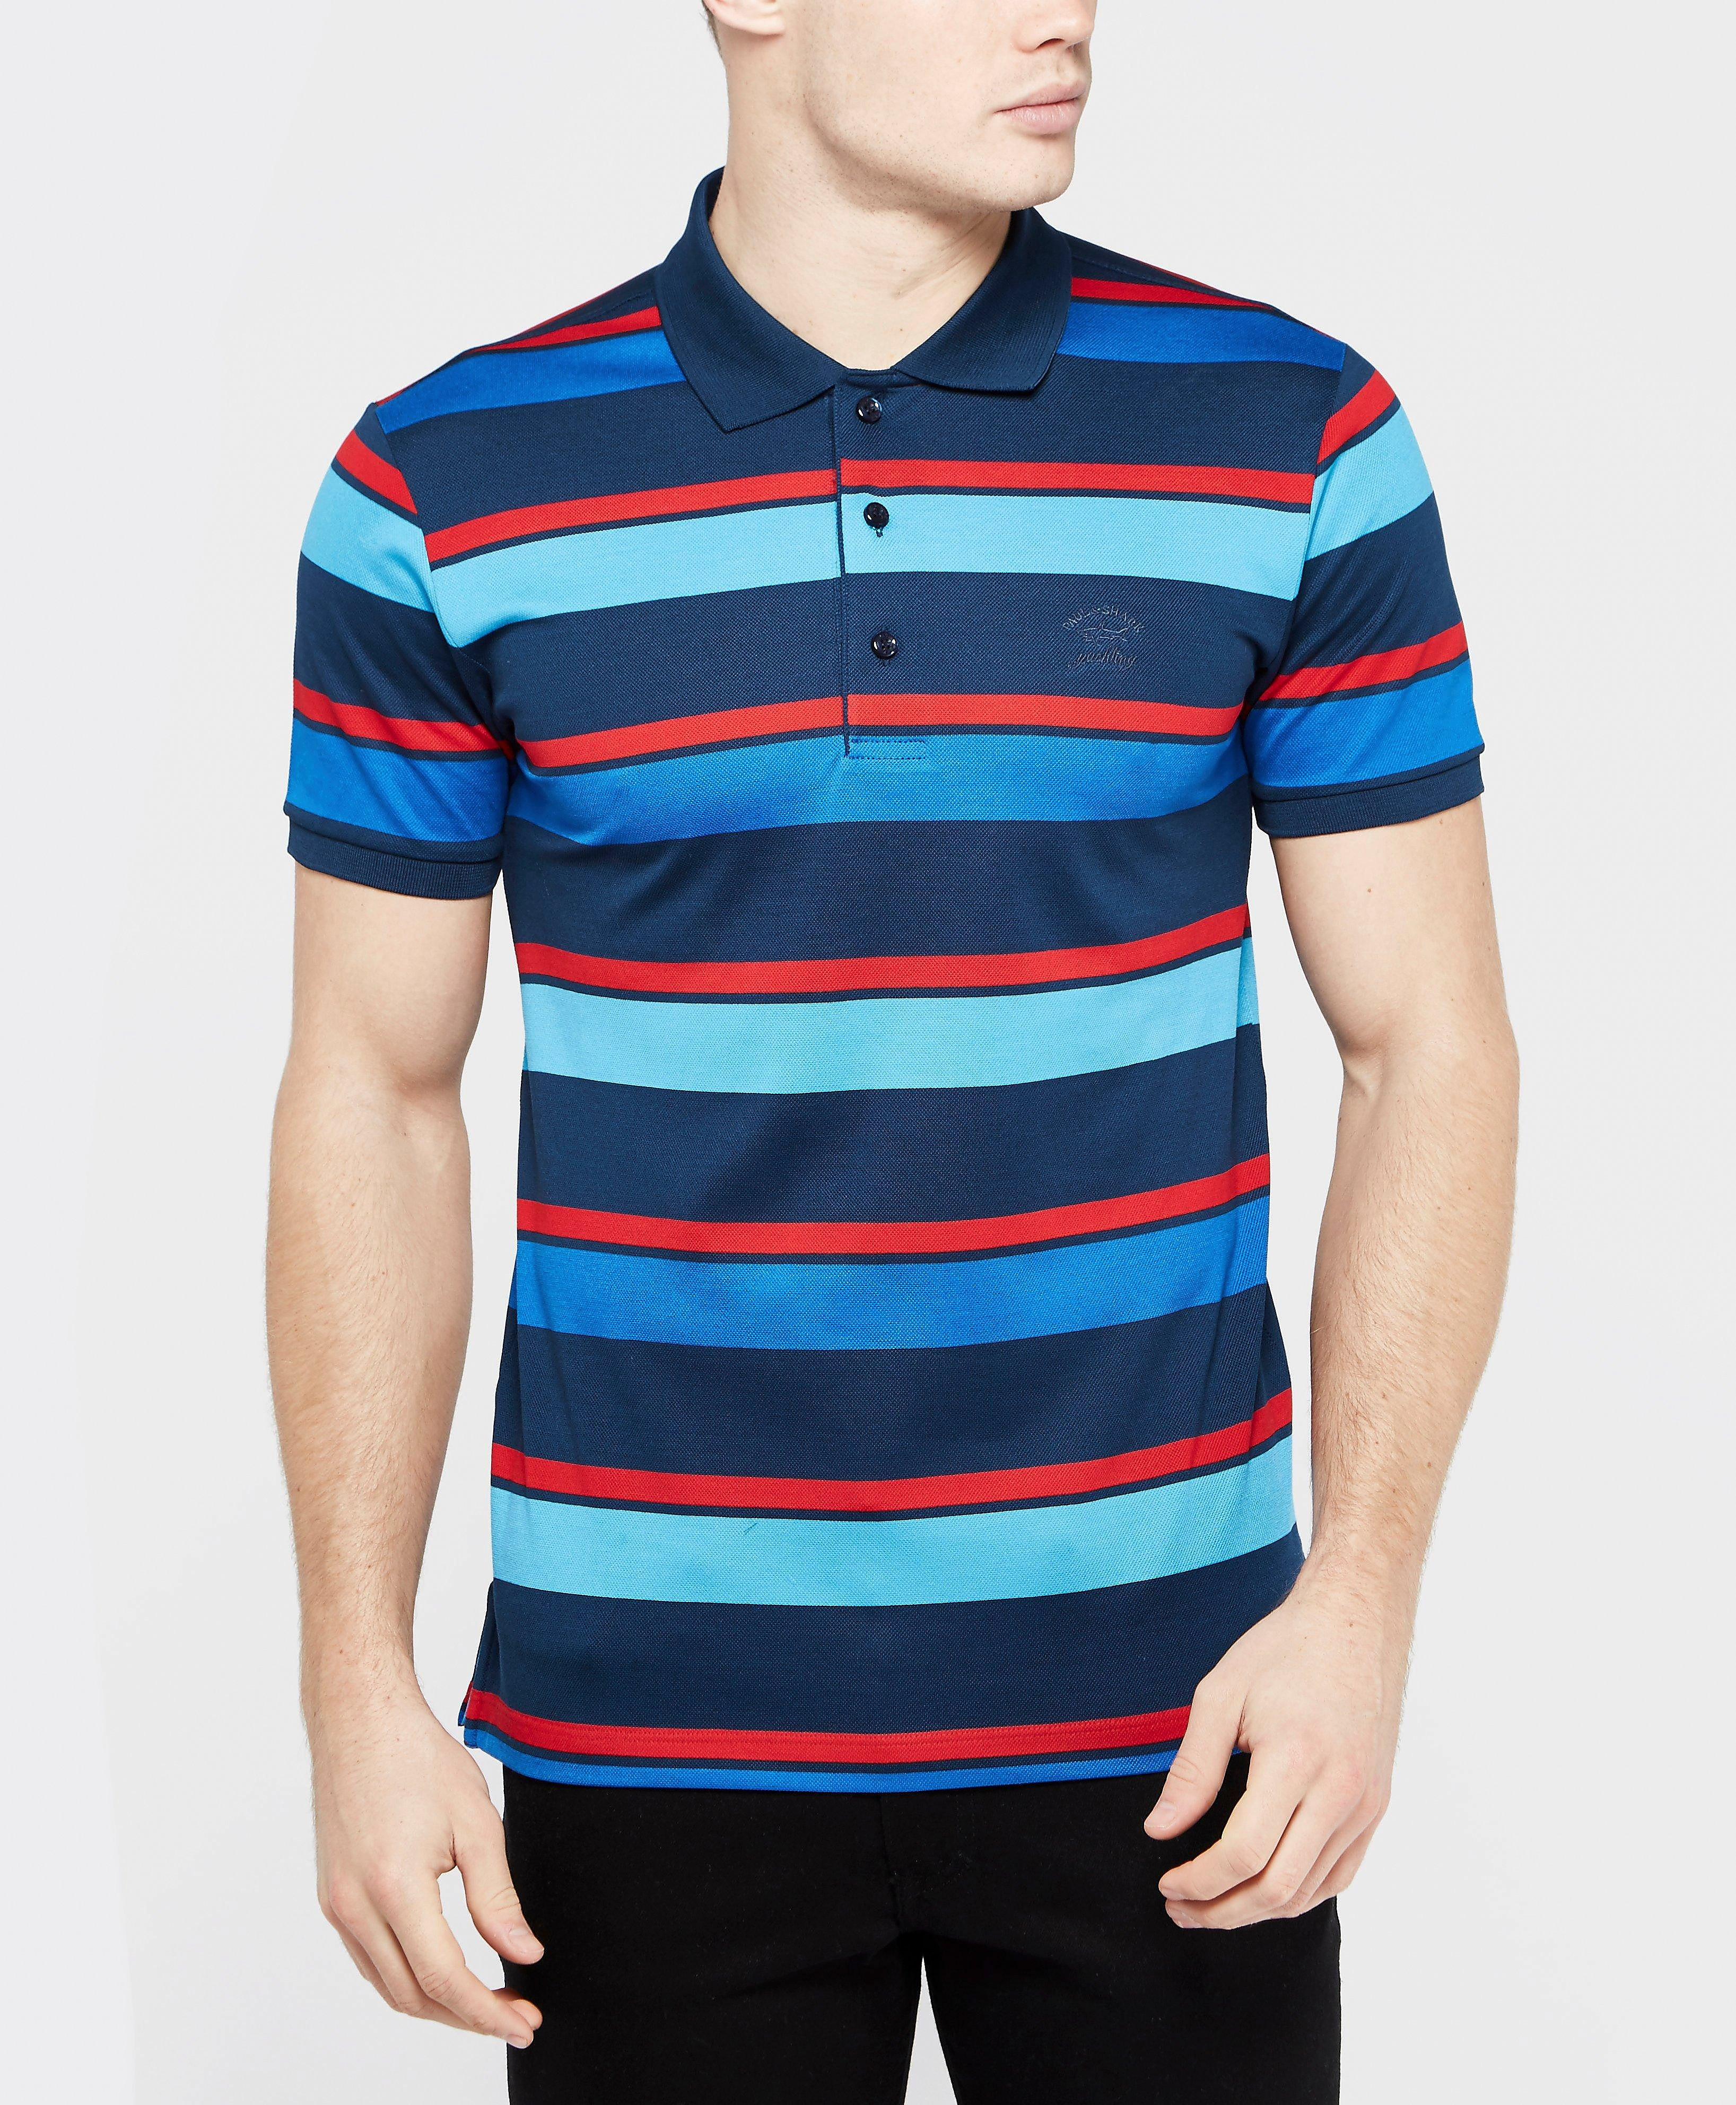 Paul and Shark Multi Stripe Polo Shirt